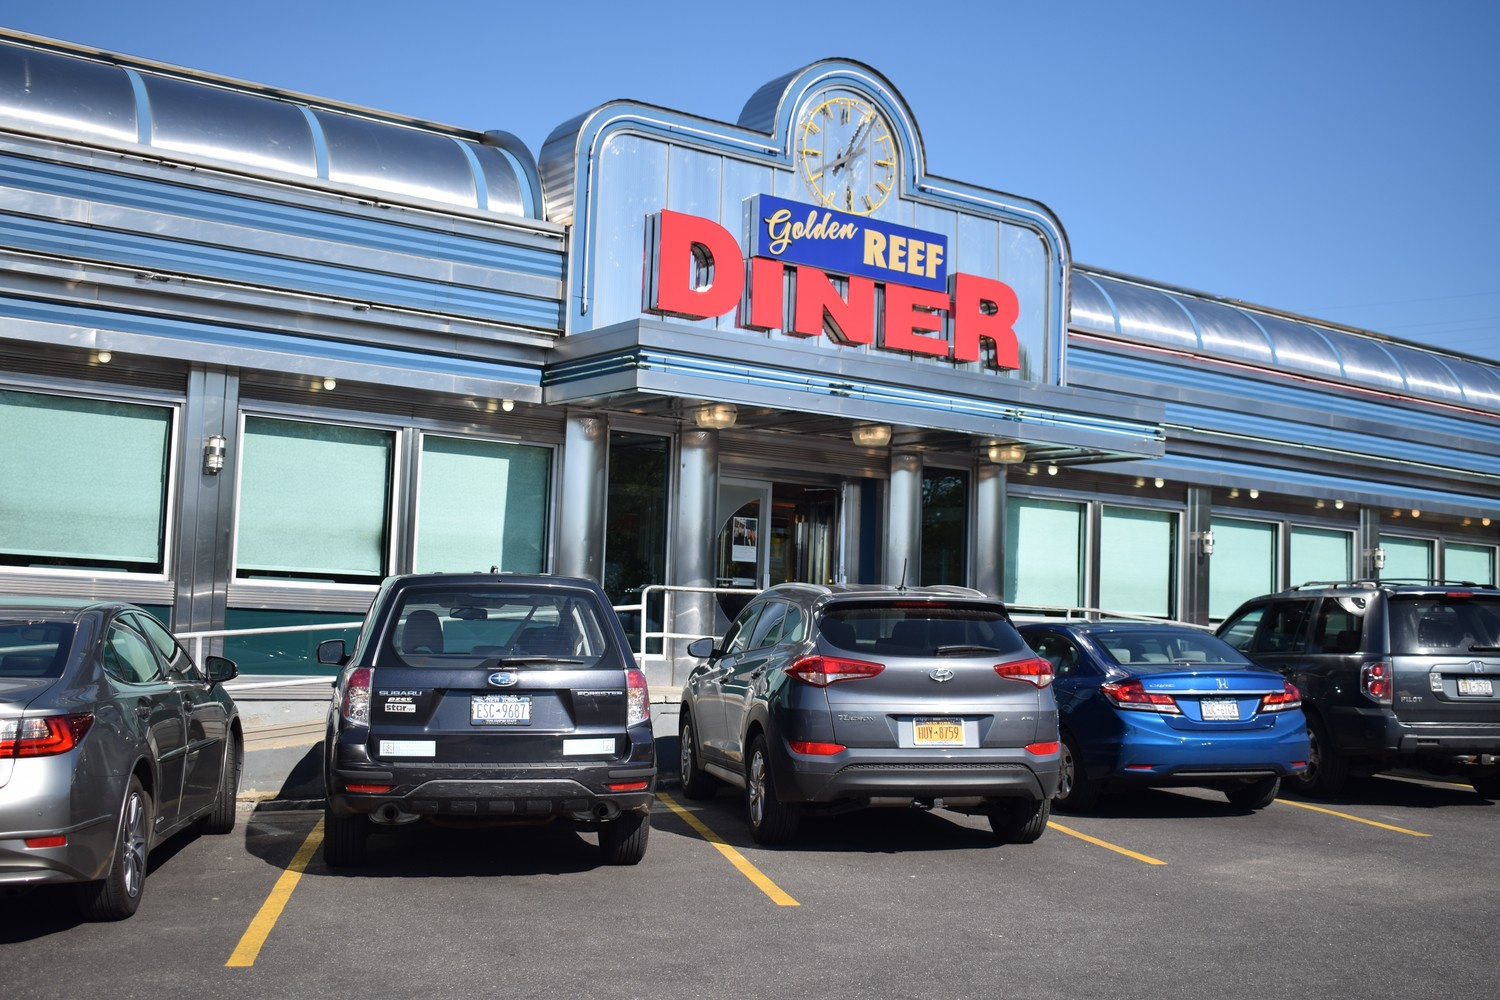 Vokshi worked at The Golden Reef Diner in Rockville Centere for 24 years.